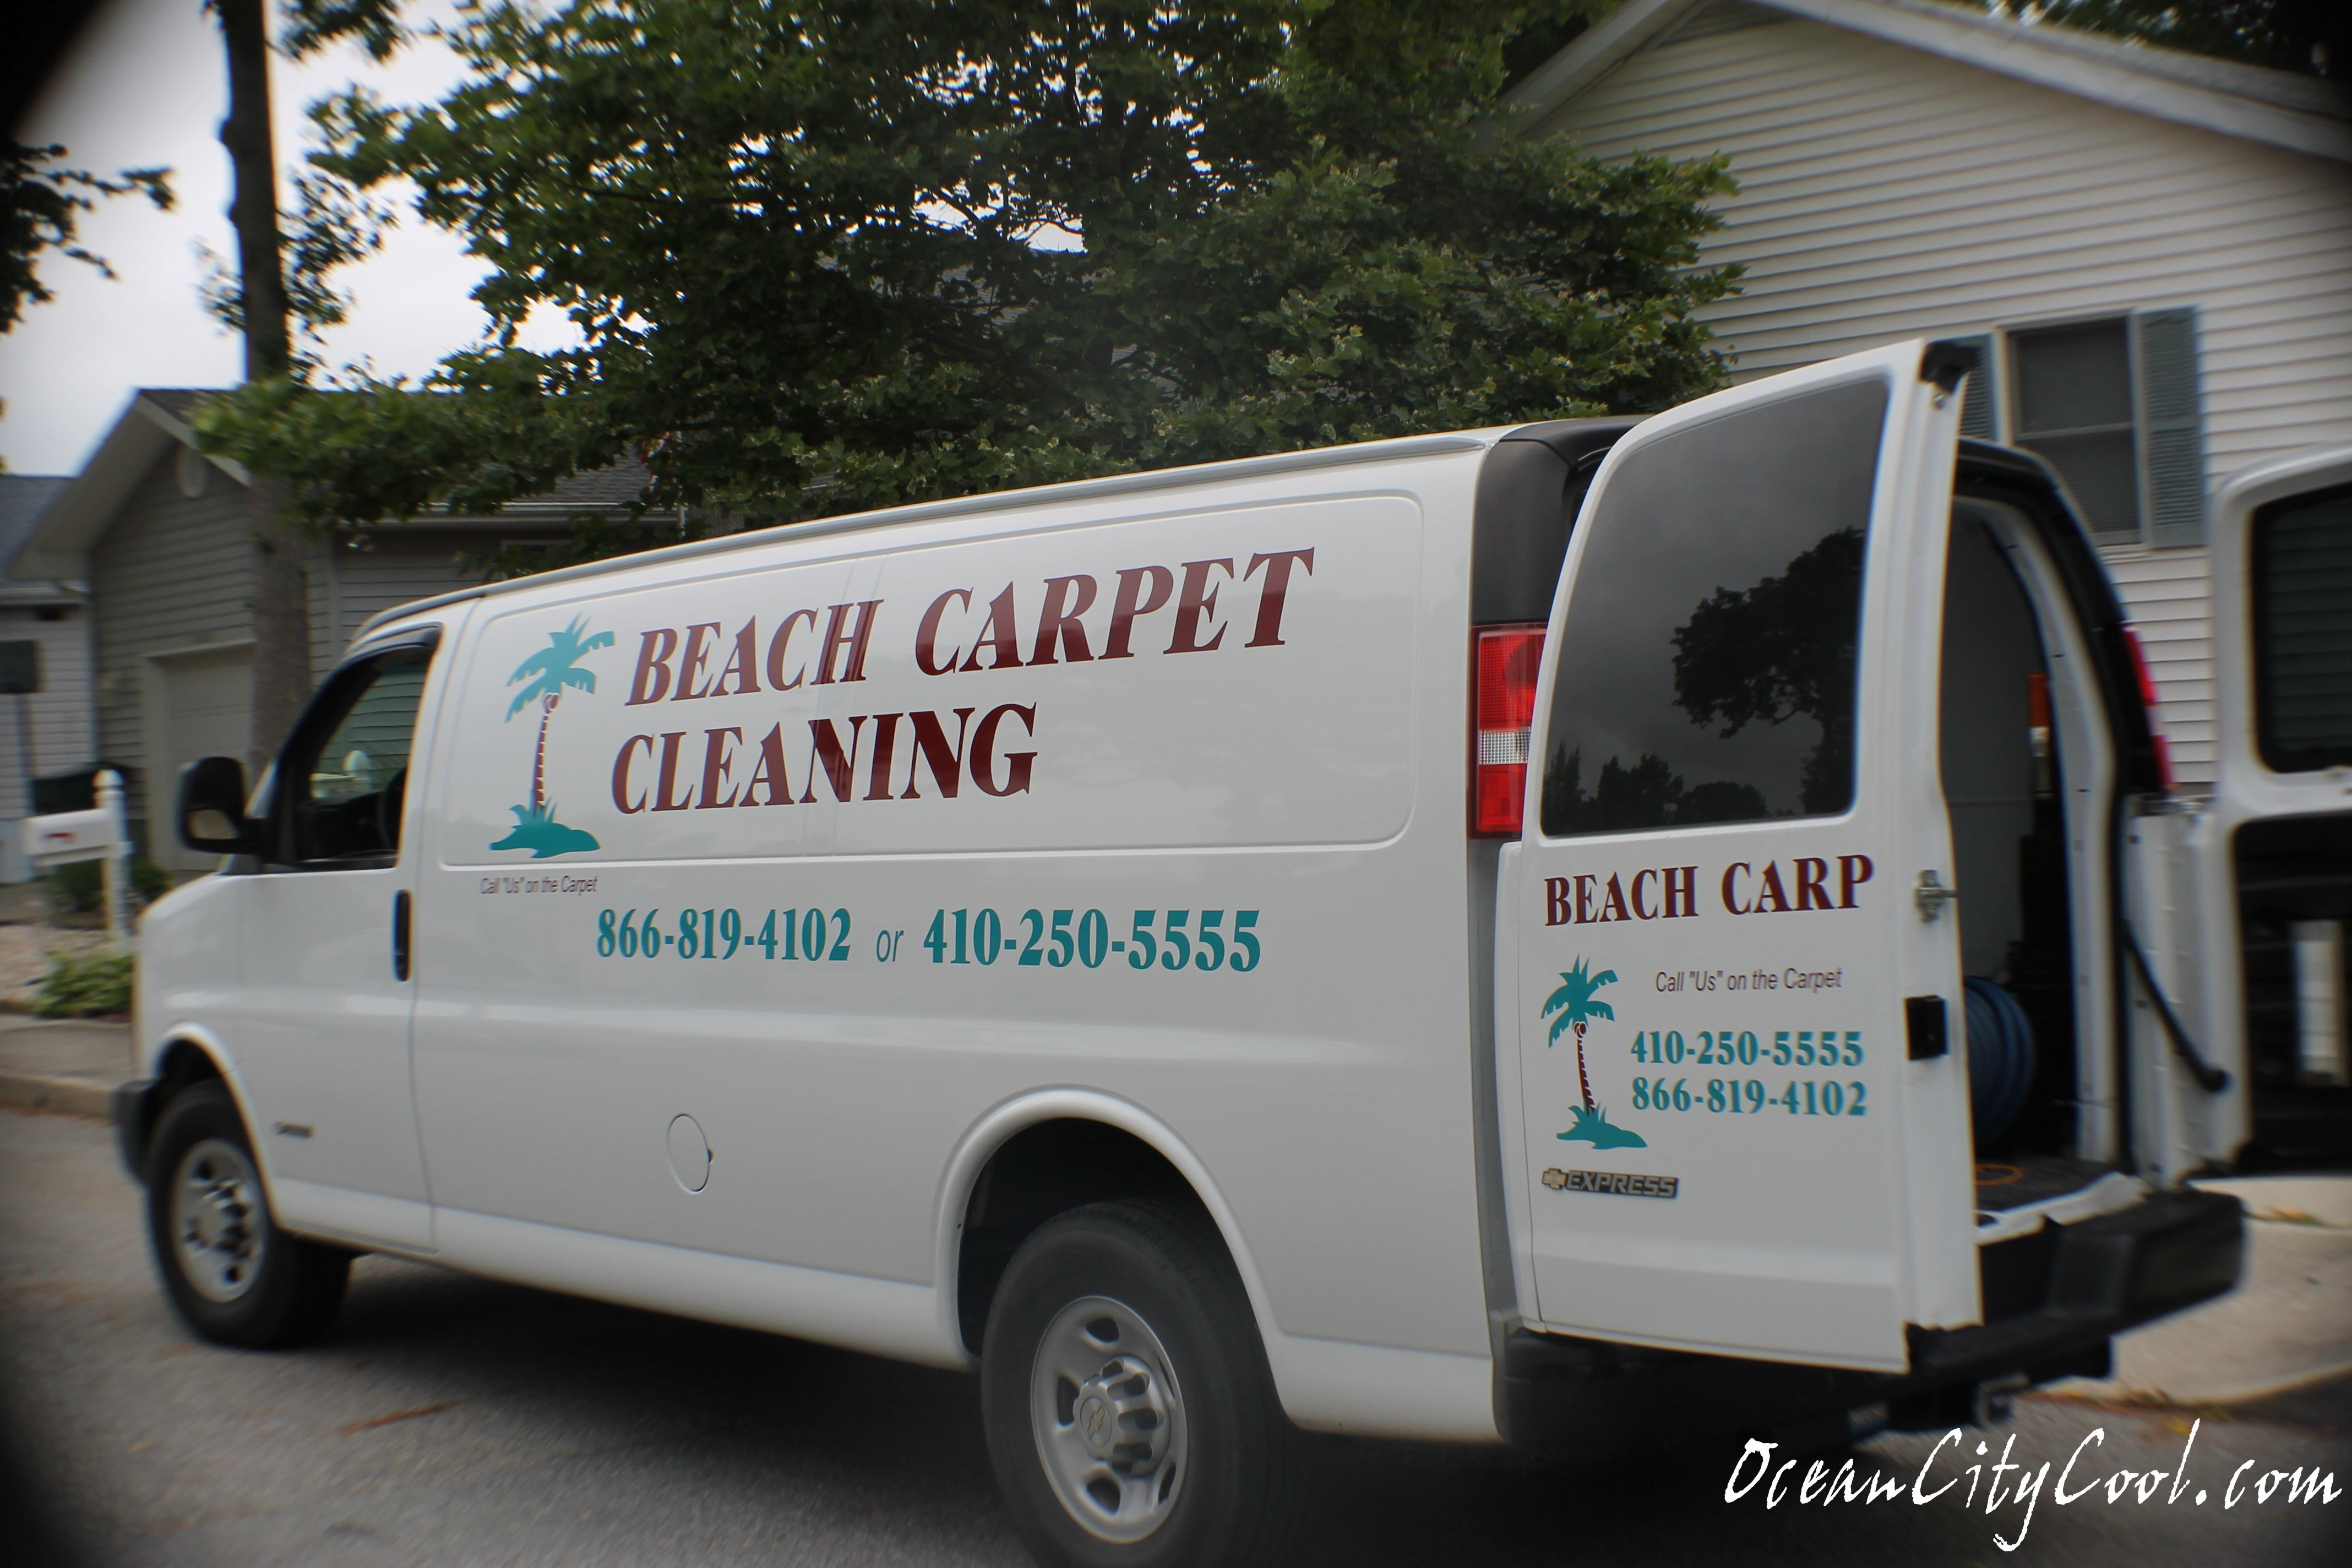 Carpet cleaning by Beach Carpet Cleaning, call 410.250.5555 for more info and estimates...  #ocmd #OCServices